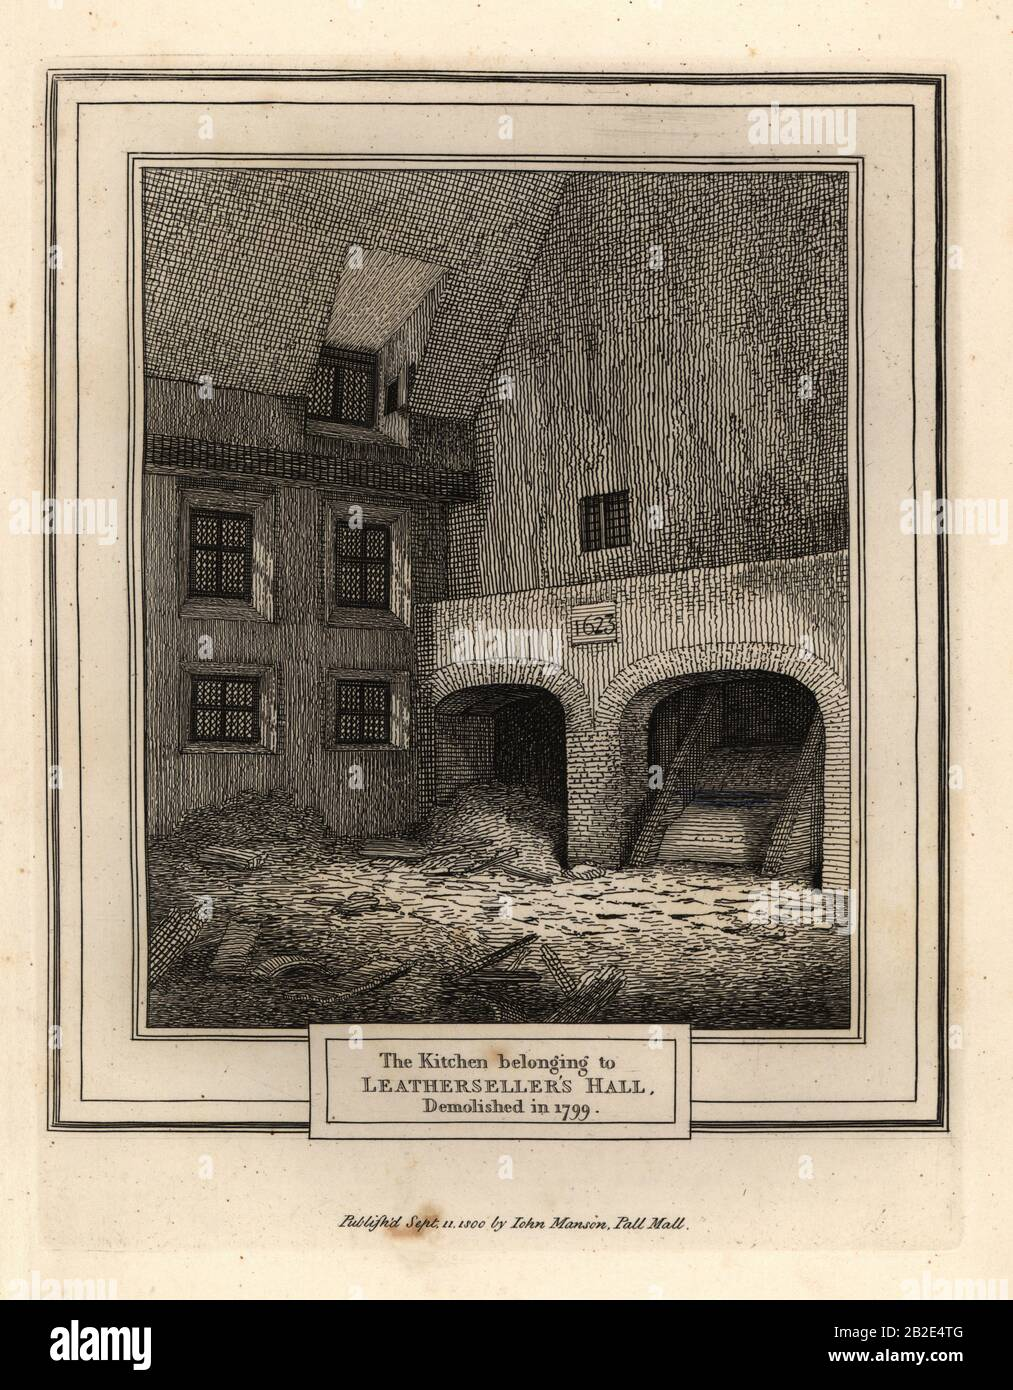 Kitchen Of Leathersellers Hall London Demolished In 1799 Copperplate Engraving By John Thomas Smith After Original Drawings By Members Of The Society Of Antiquaries From His J T Smith S Antiquities Of London And